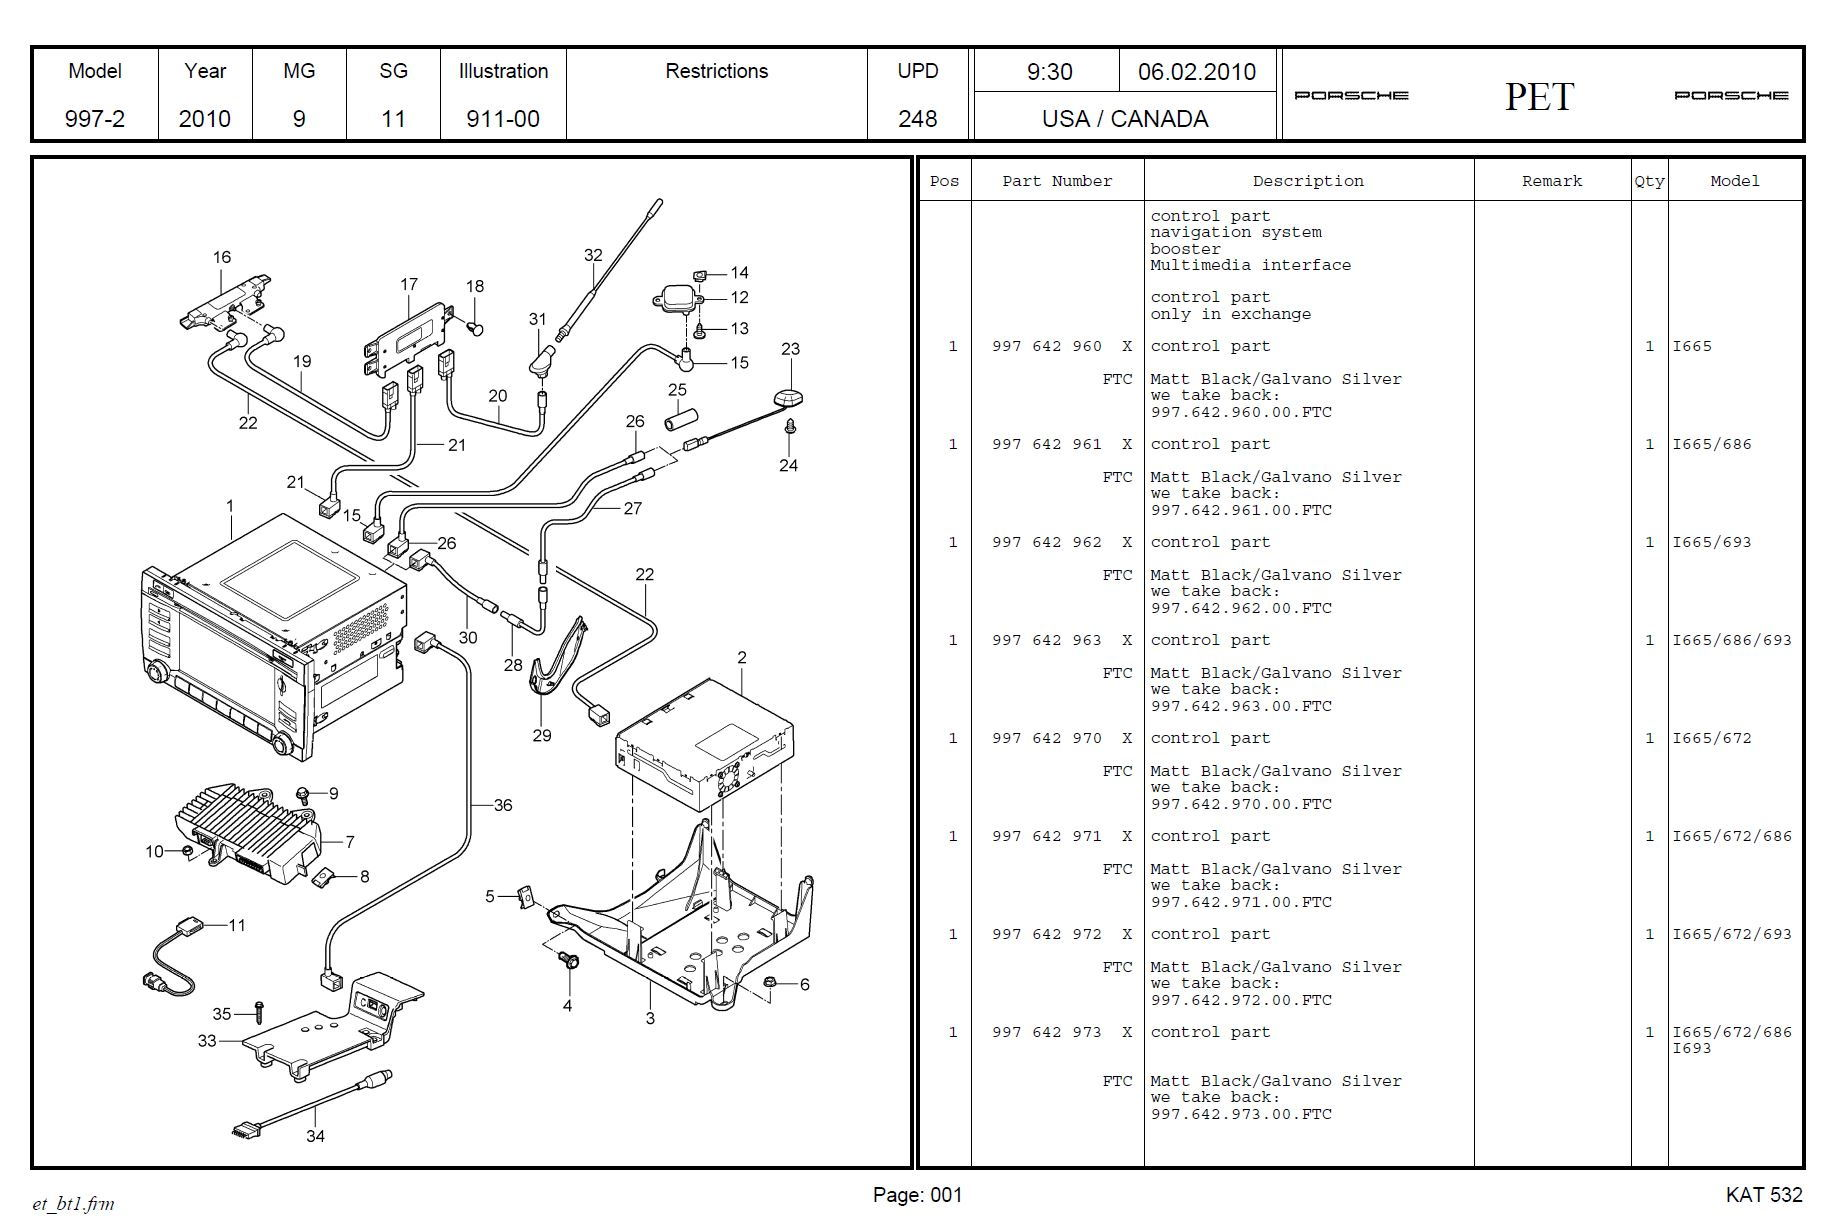 Porsche Pcm 2 Wiring Diagram Trusted Diagrams Cayenne 2009 3 0 Free Download U2022 Oasis Dl Co Pds